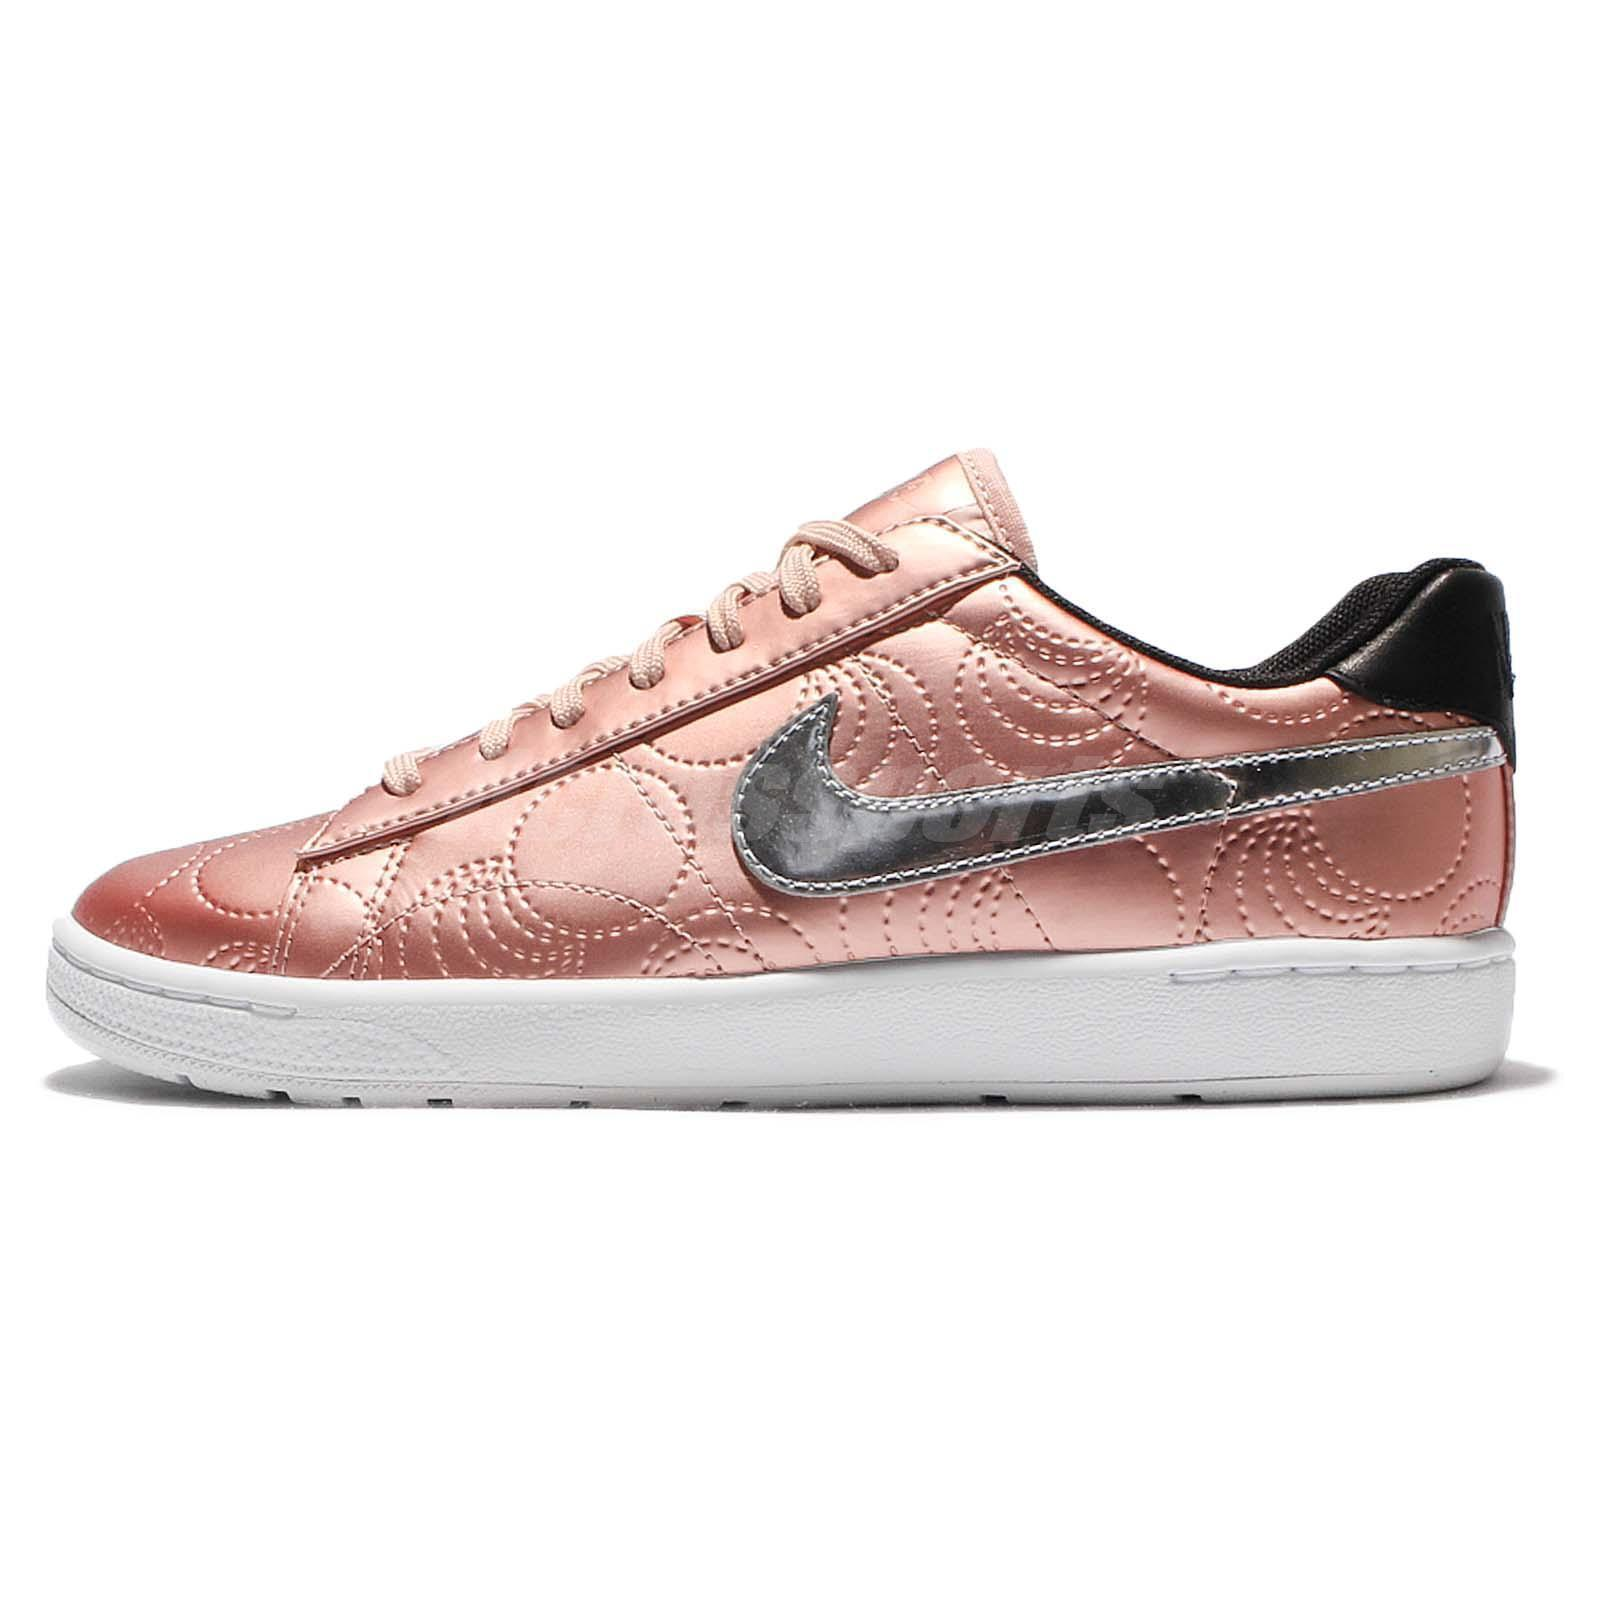 Nike Women's Tennis Classic Ultra LOTC QS Sz 9.5 9.5 9.5 NEW 860589 600 Look of the City 6e8a29